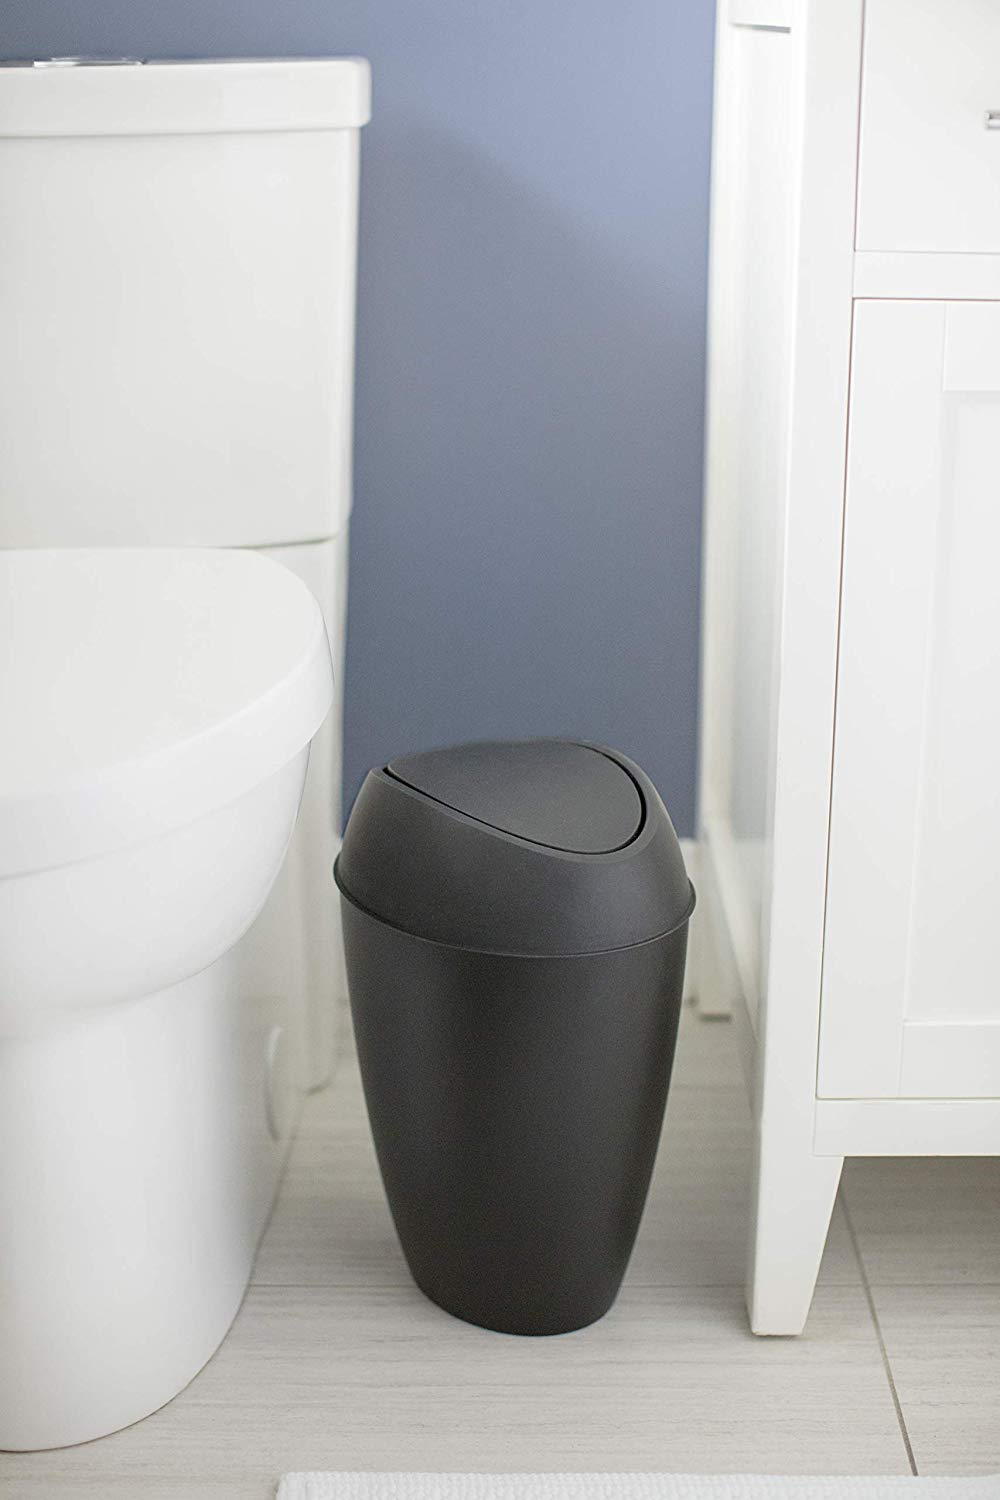 Shadow Gray 2.4 Gallon Trash Can with Swing-top Lid